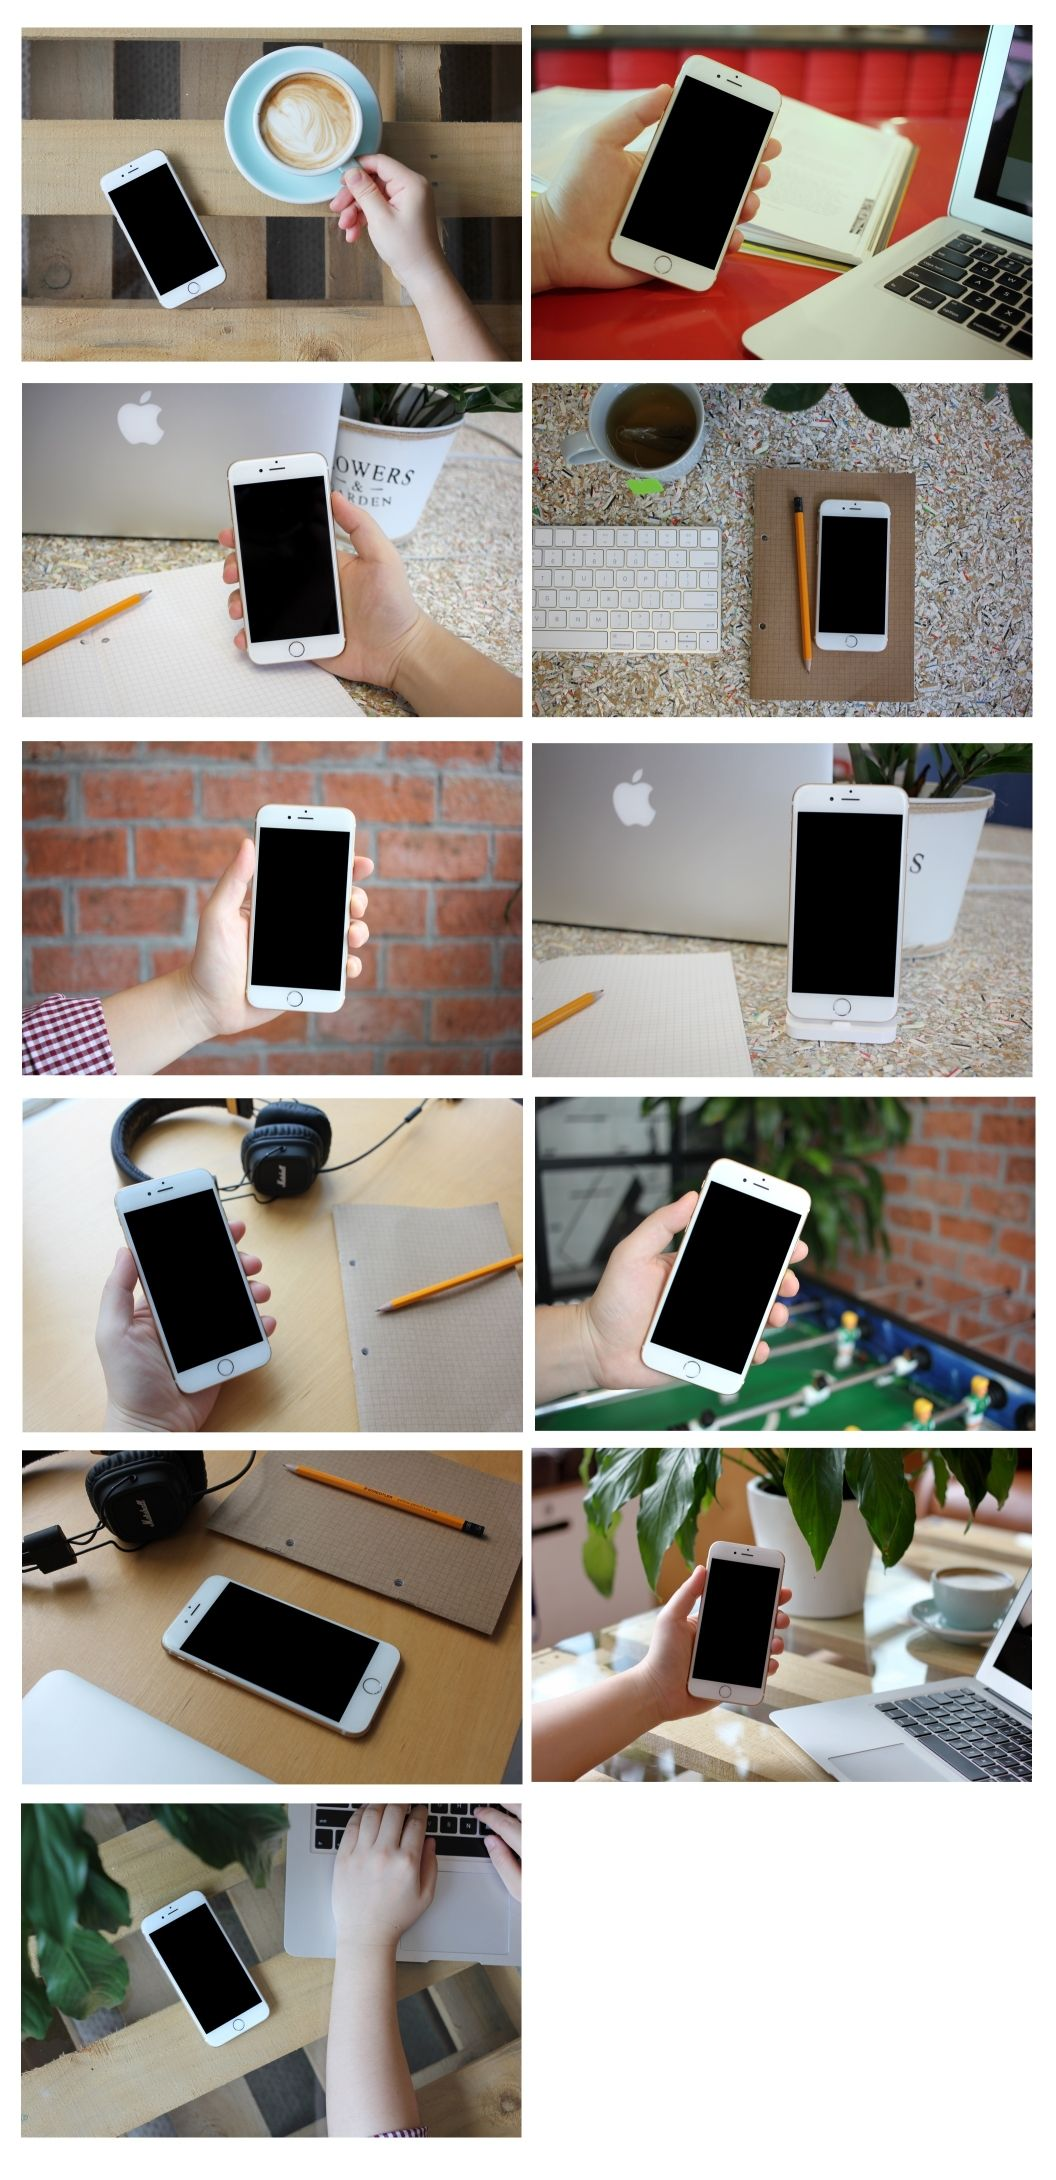 11 Perspective iPhone 6 mockups in a coworking atmosphere